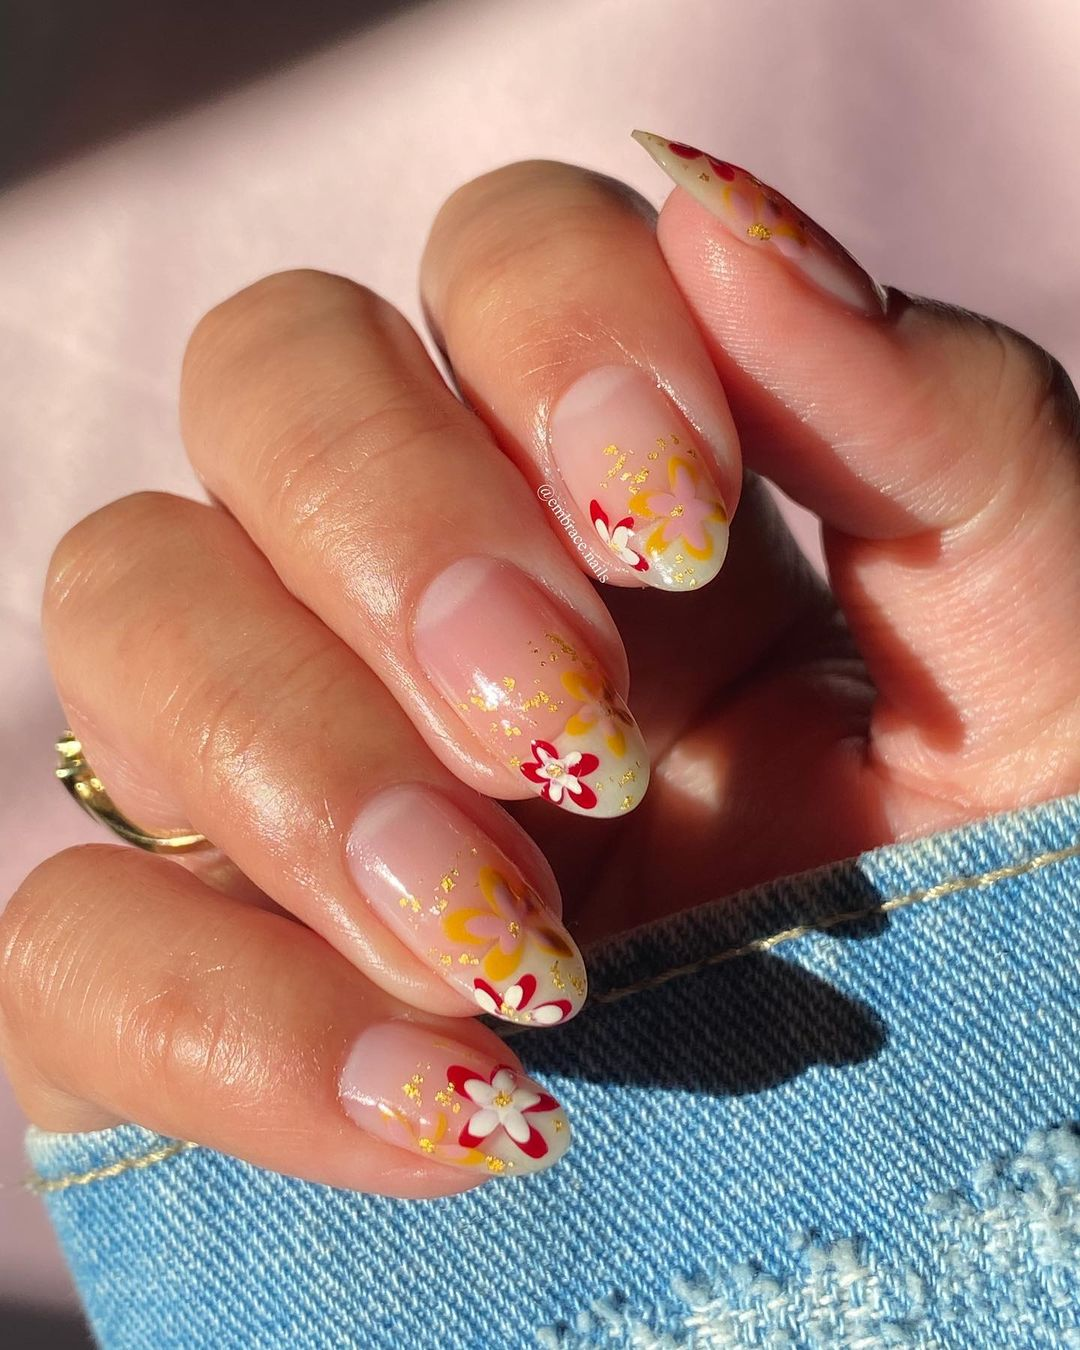 Seventies-Inspired Almond Manicure